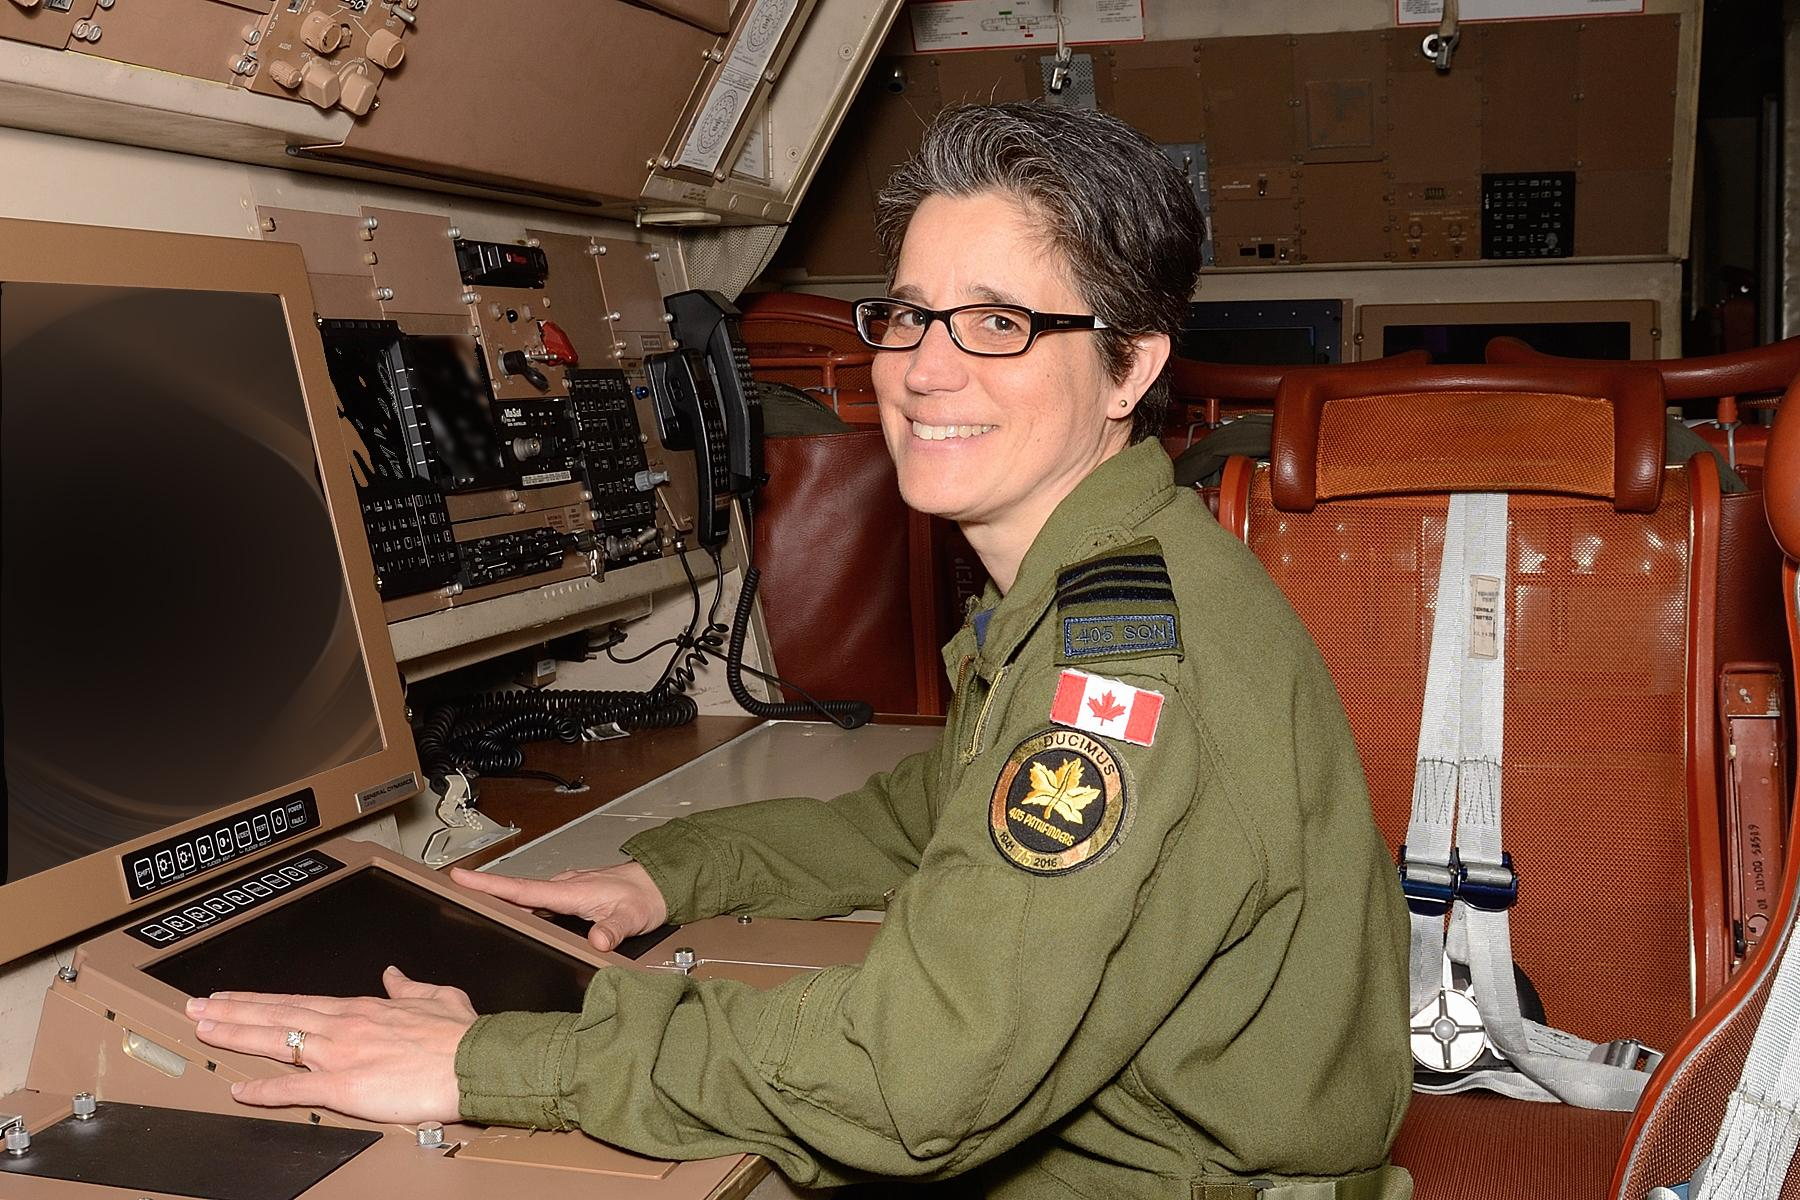 A woman in a green flight suit sits at a desk in an aircraft.